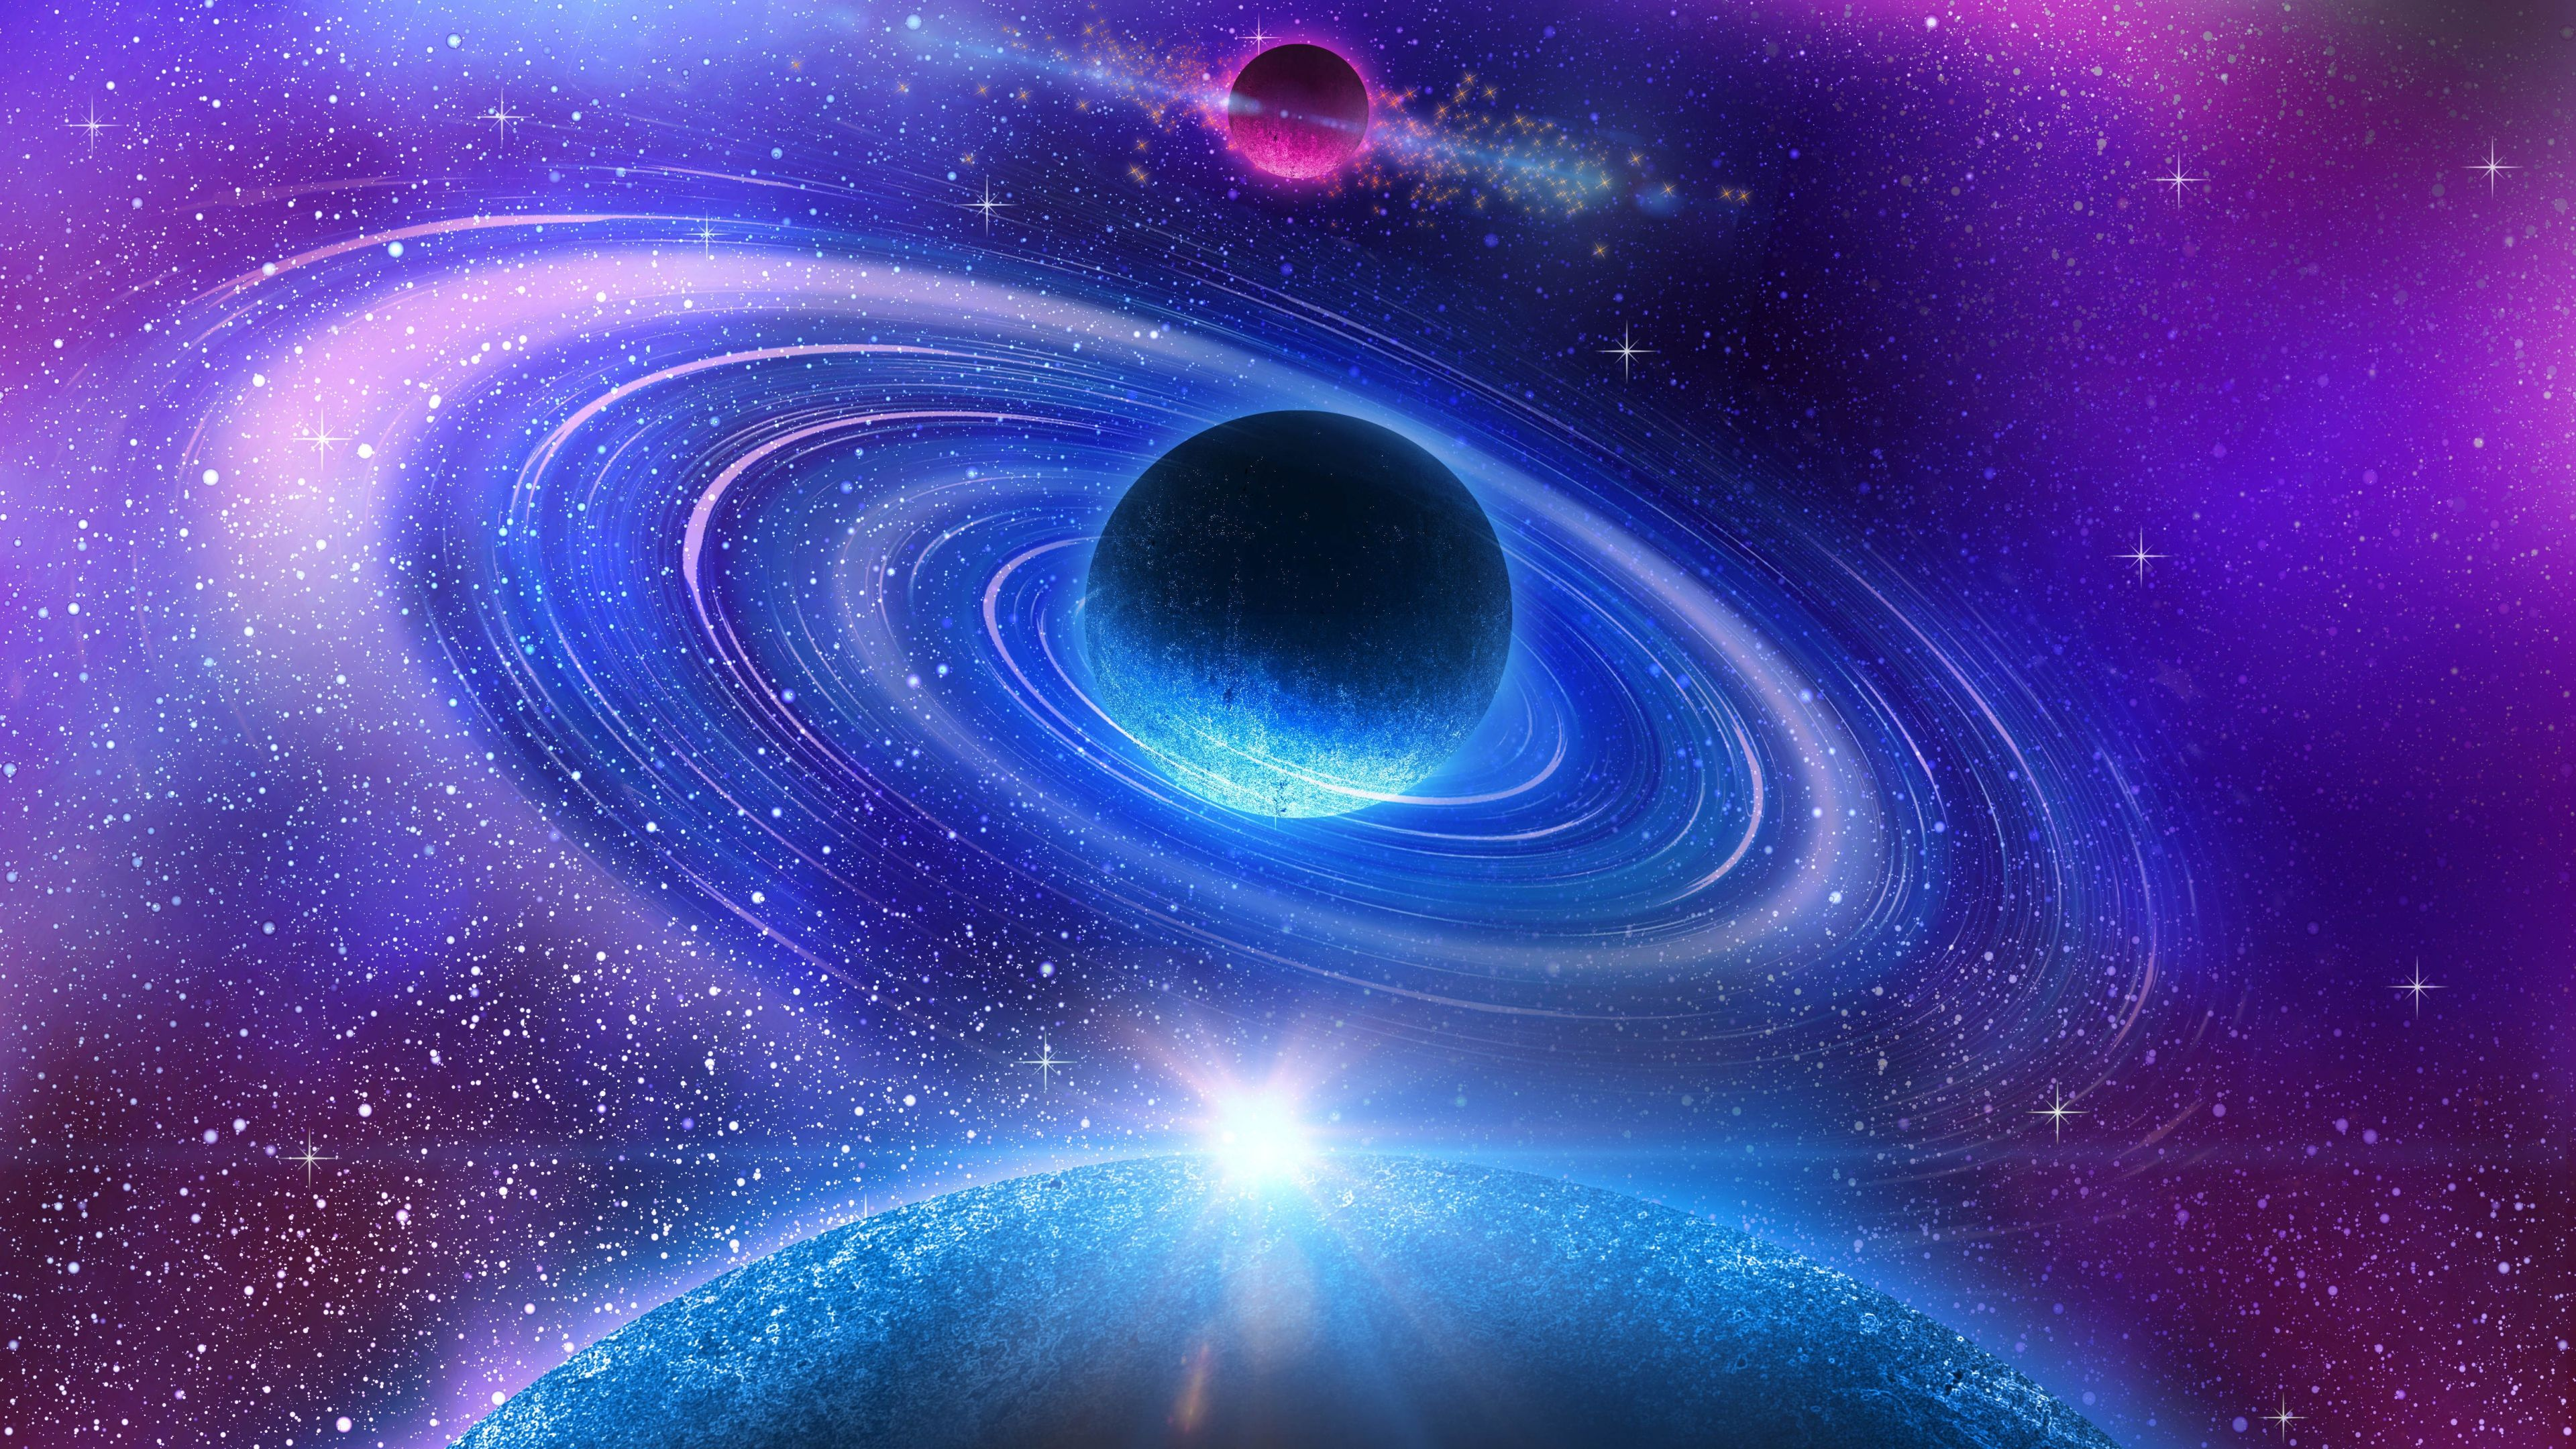 Ultra hd wallpaper pink violet view in space kaka - Pink space wallpaper ...